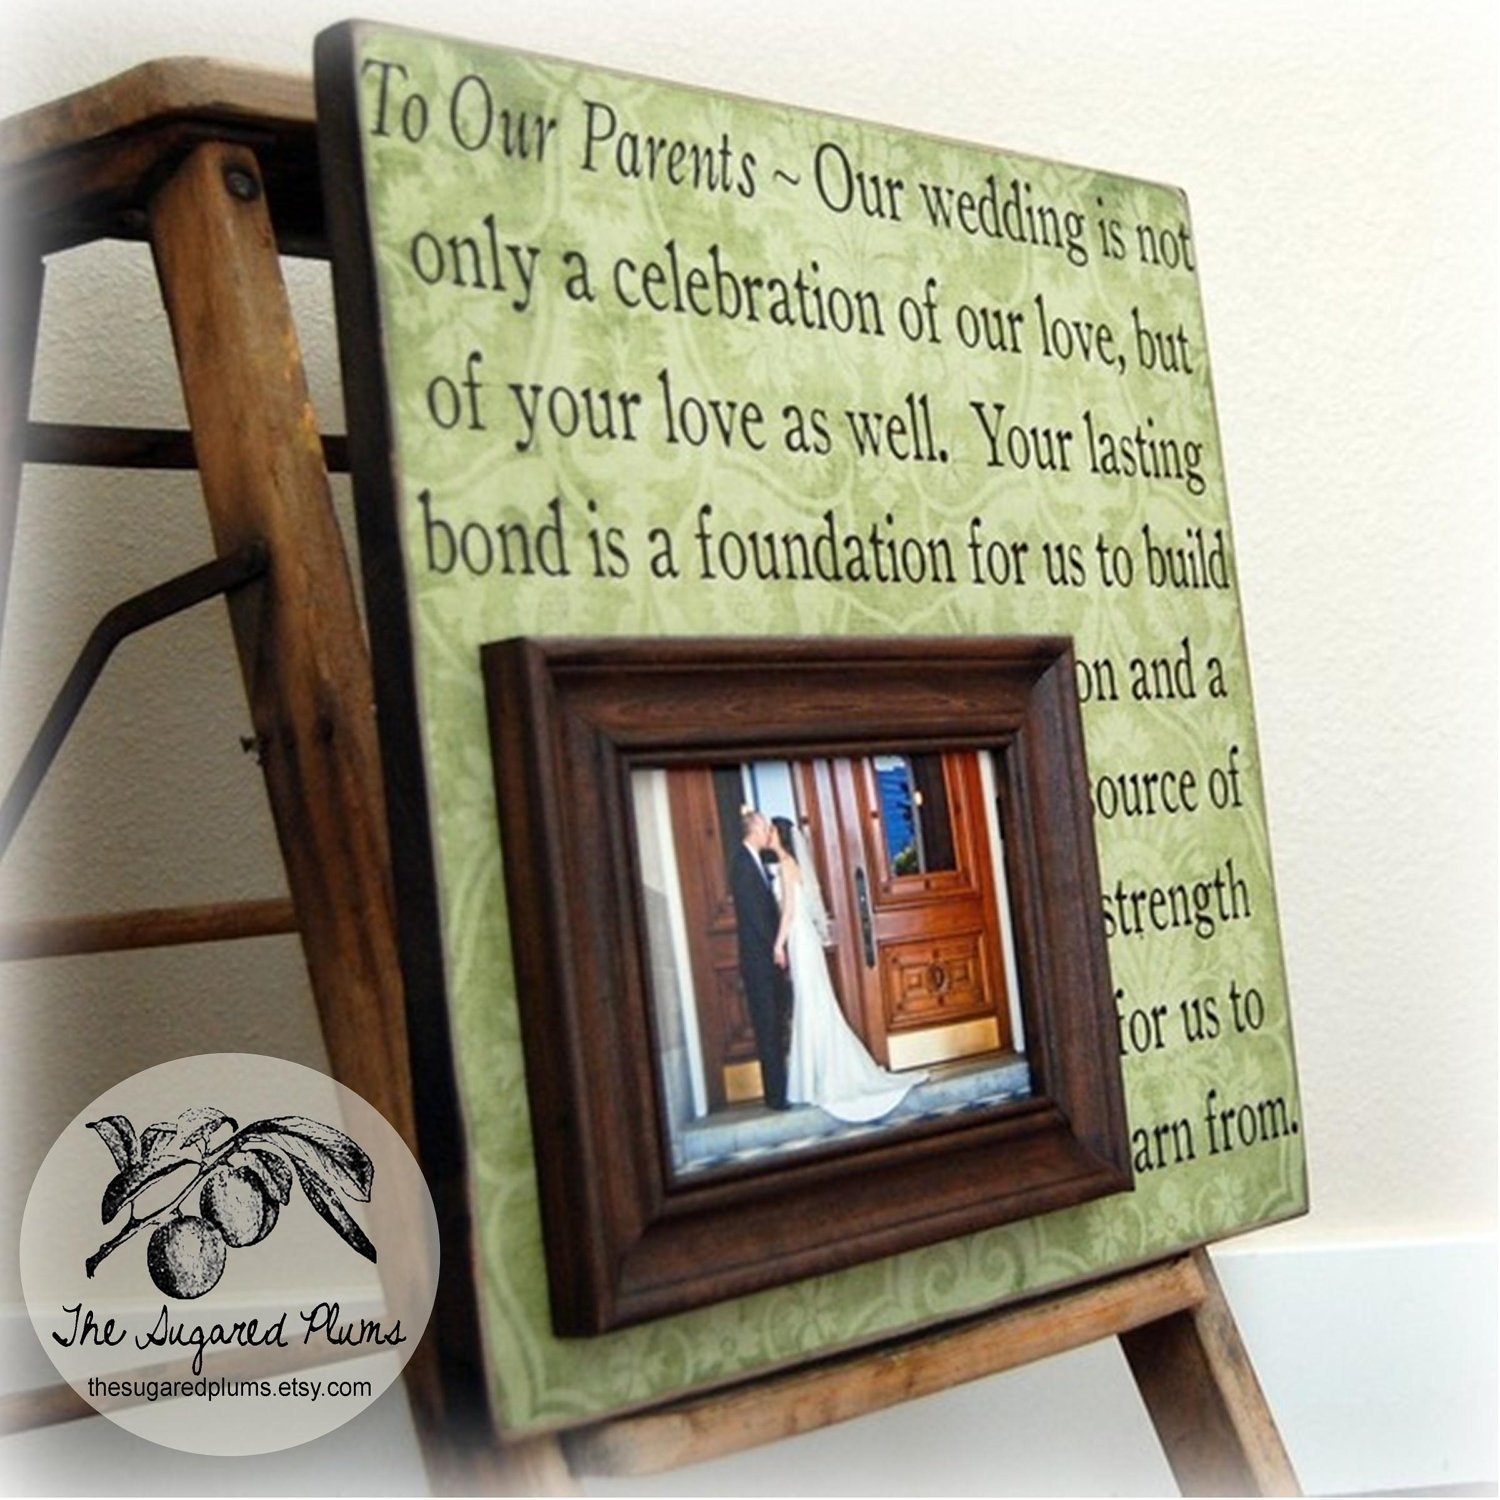 Buyers Guide 25th Wedding Anniversary Gift Ideas For Parents